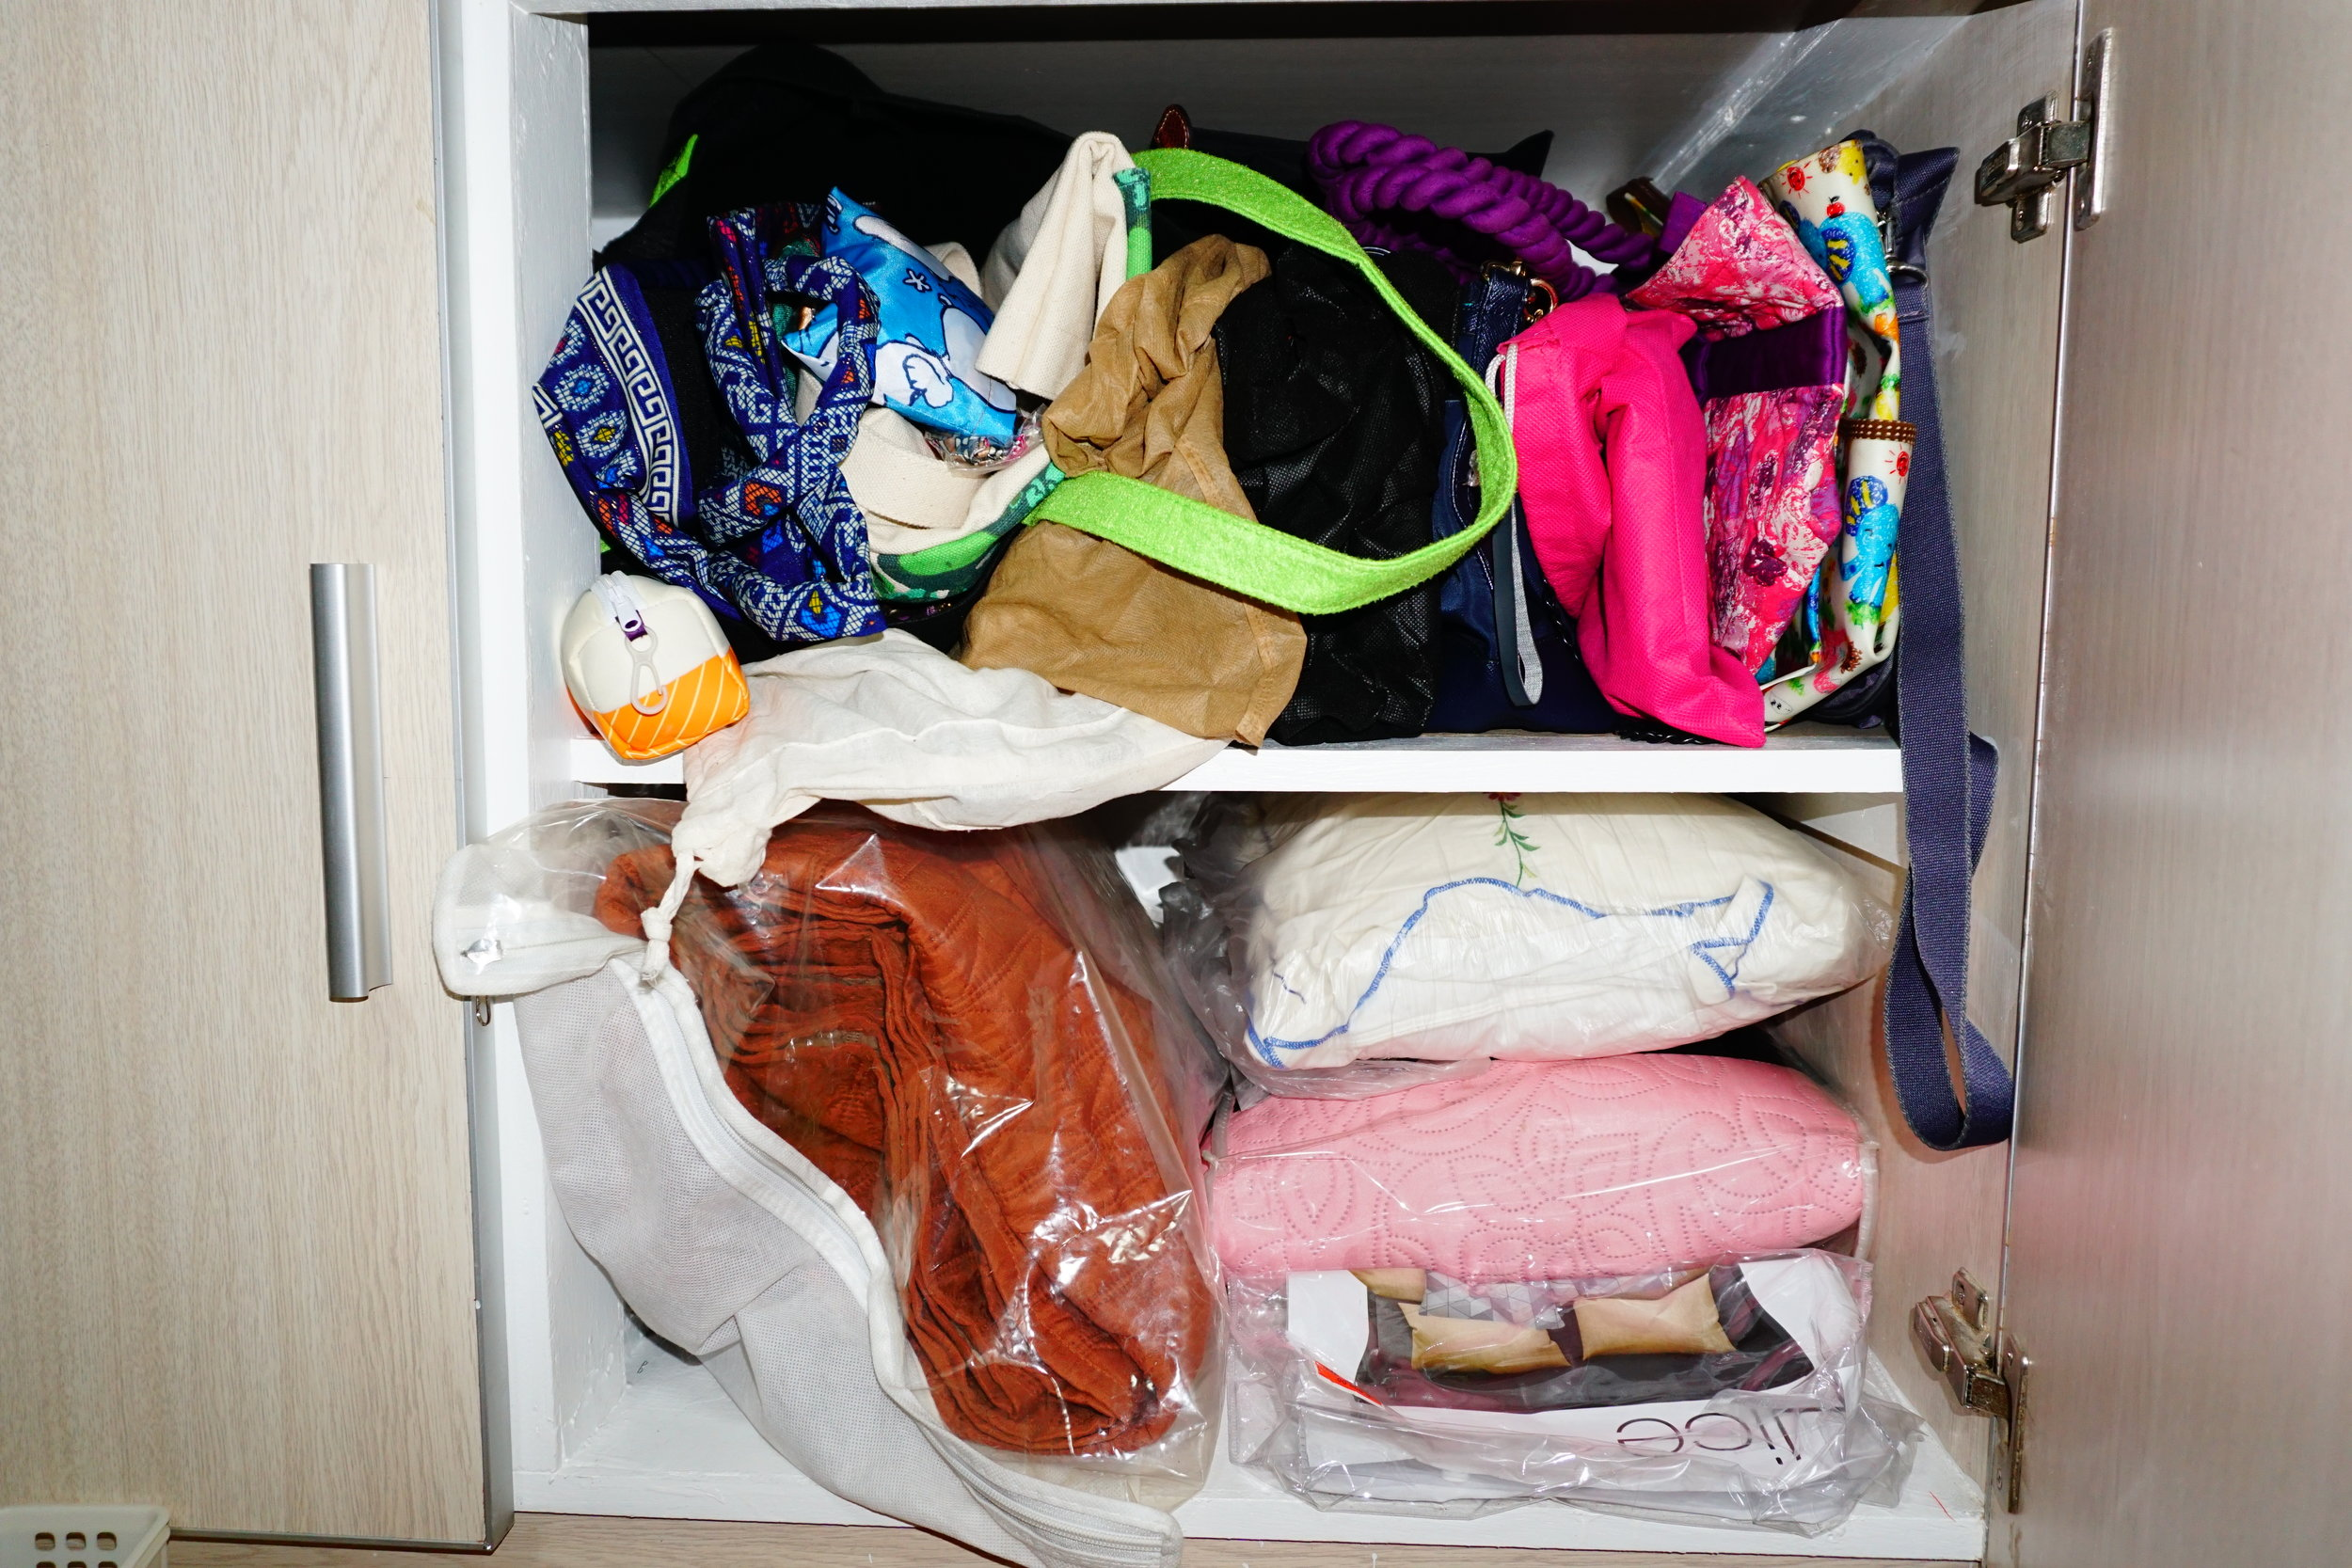 BEFORE :My poor bags used to be cramped in a tiny shelf of a cabinet